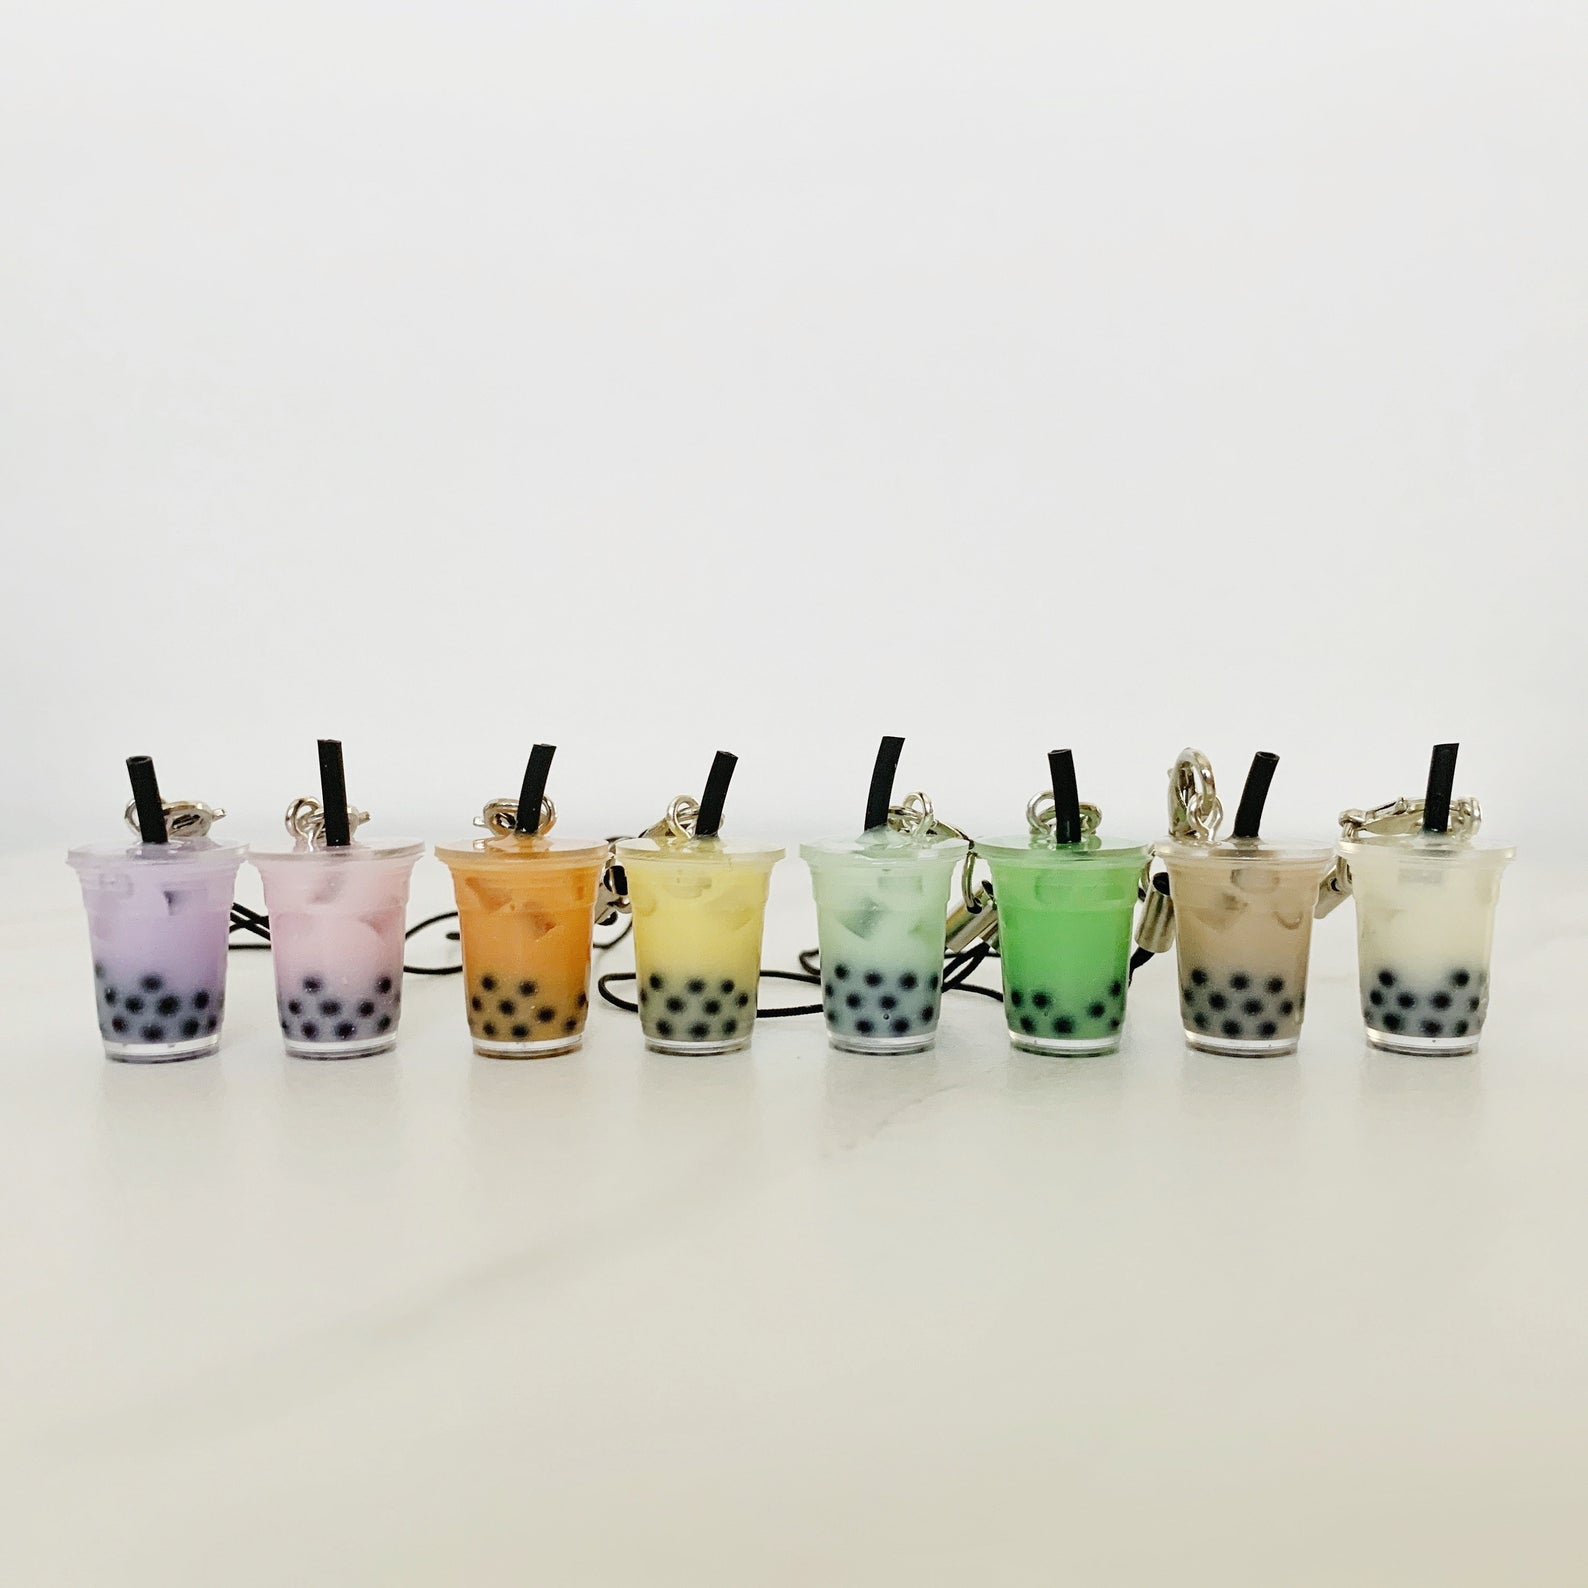 Boba-shaped keychains in an array of colors